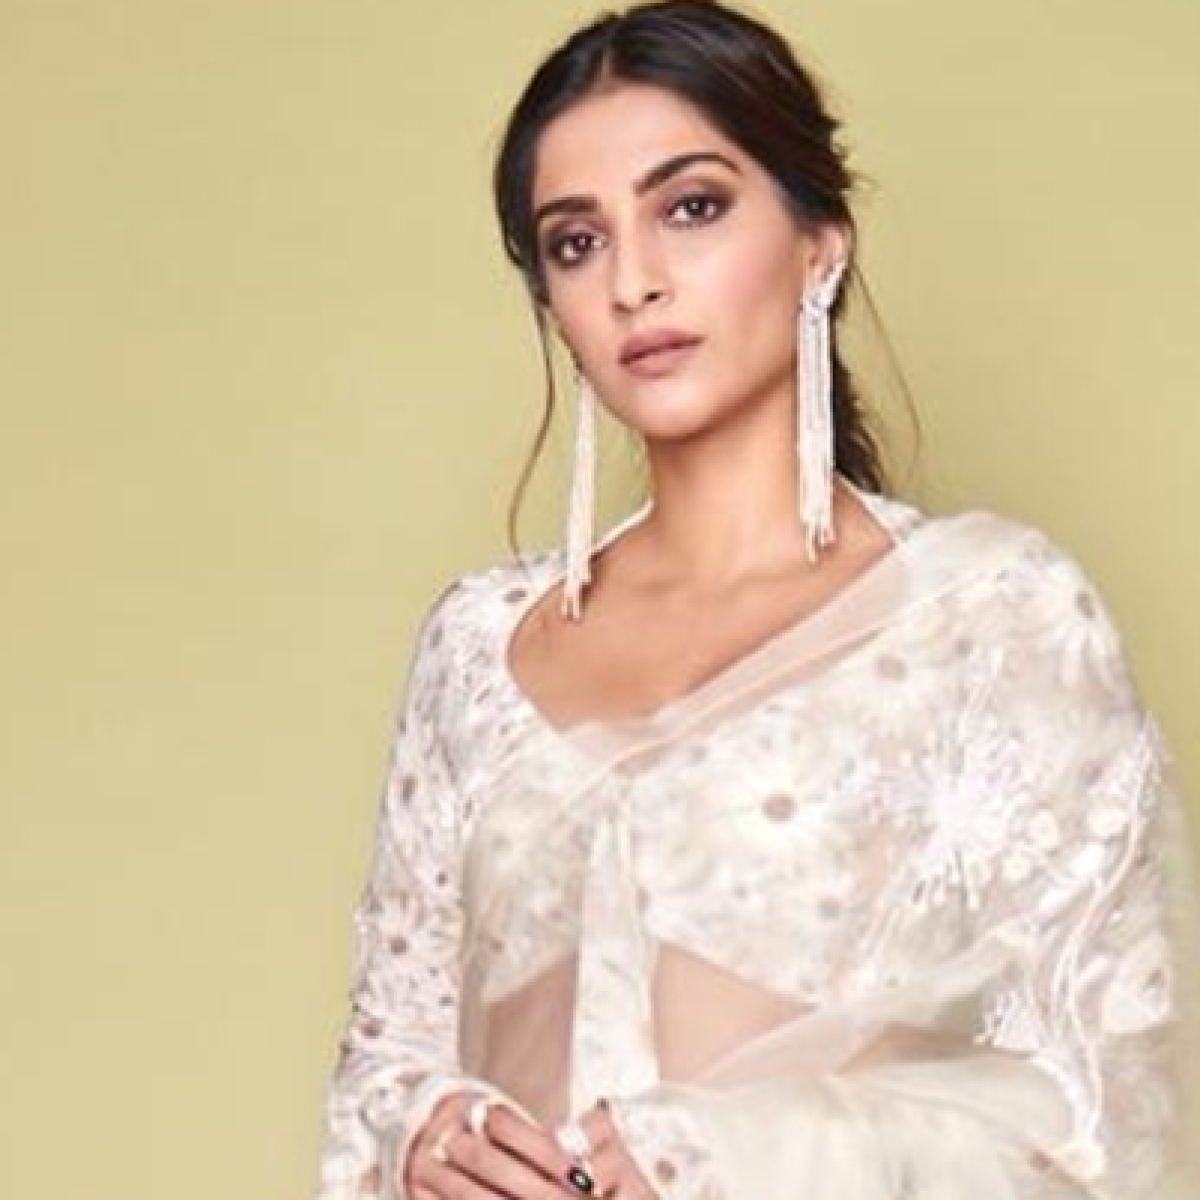 'You cannot beat this when it comes to being stupid': Sonam Kapoor trolled for tweeting sun is 'light years away'